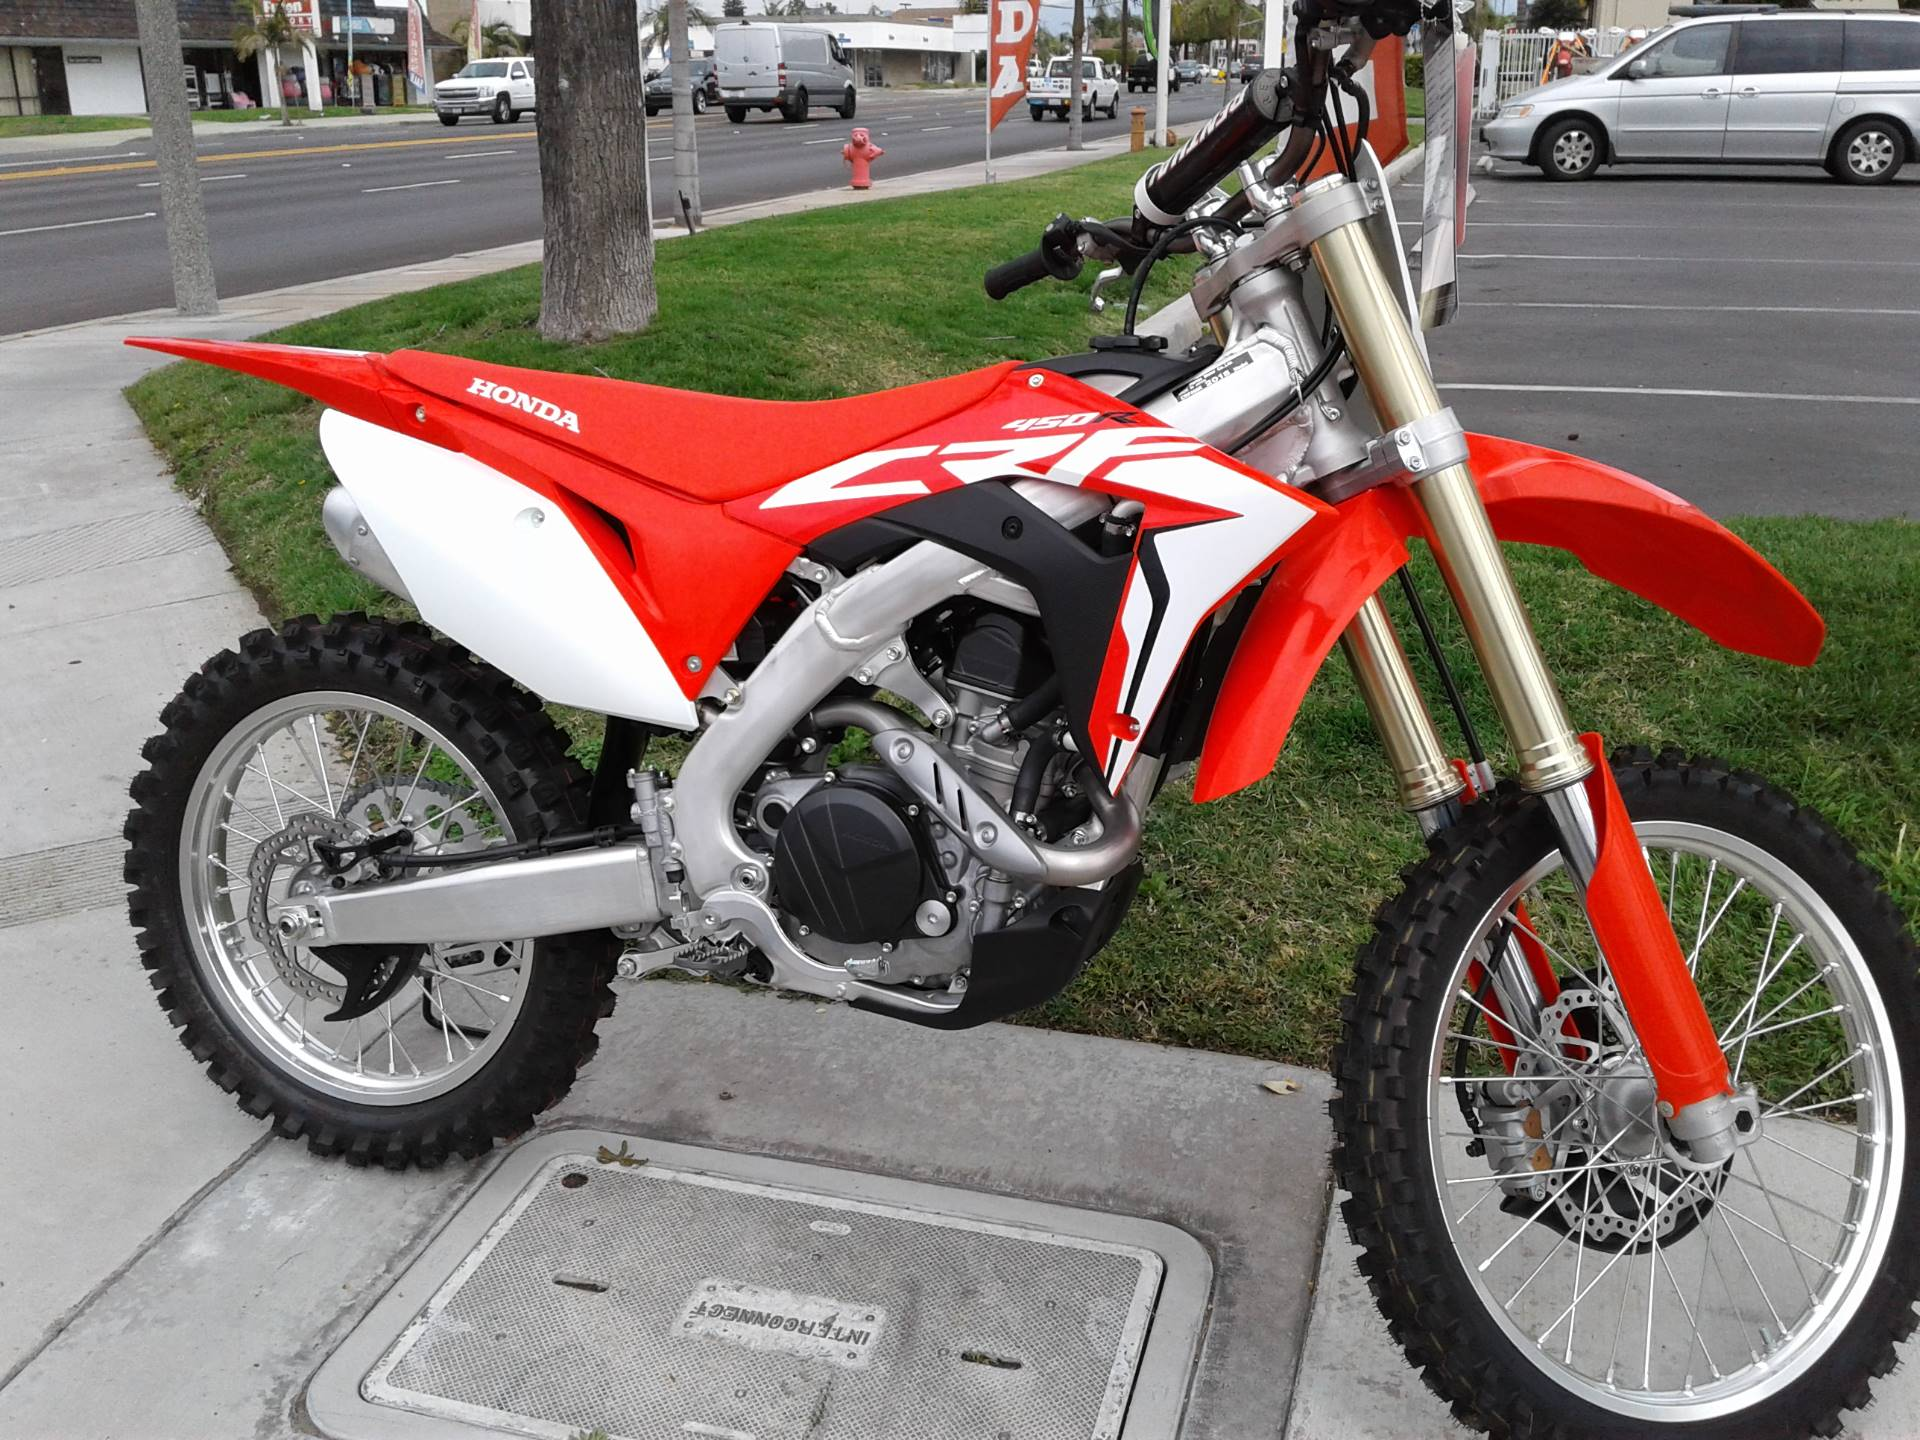 New 2018 Honda CRF450R Motorcycles in Orange, CA | Stock Number: 12027D